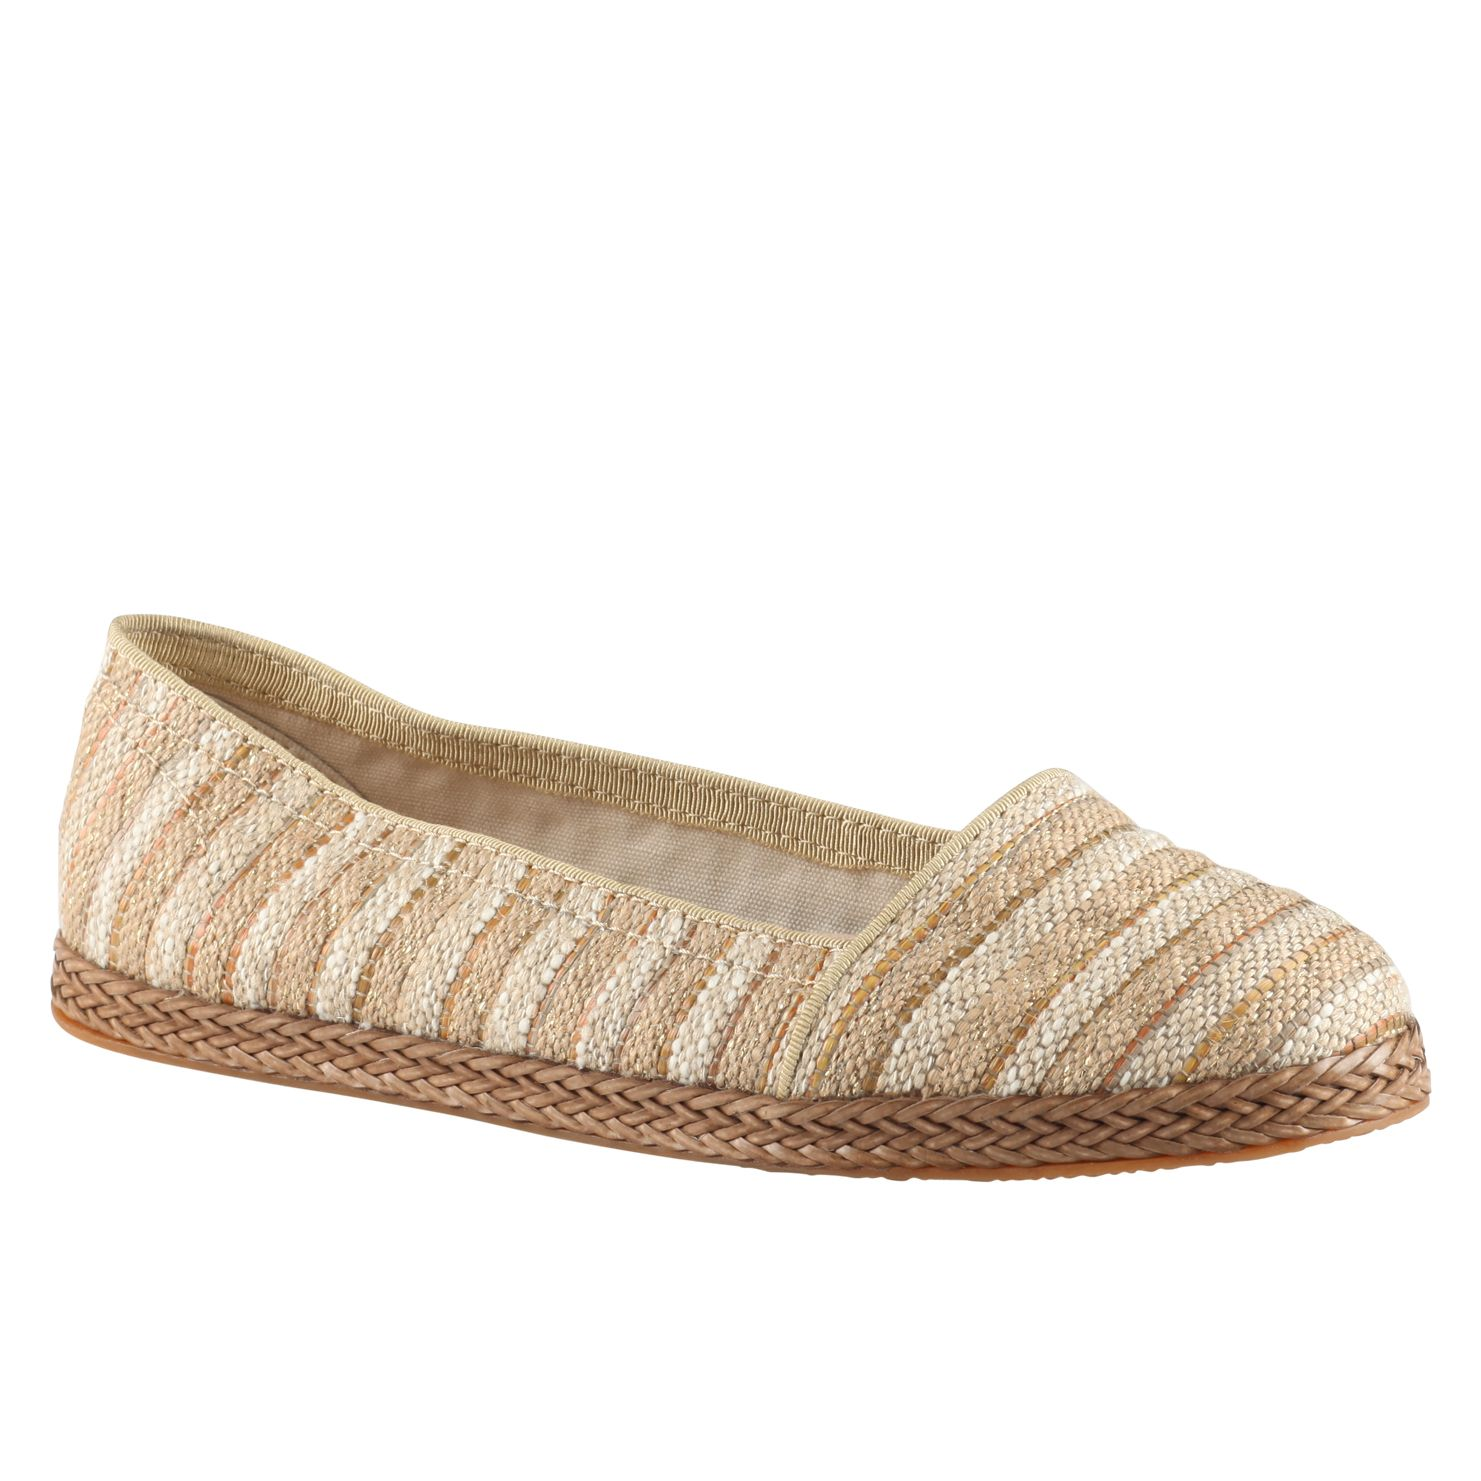 Mezilina Espadrille Casual Shoes